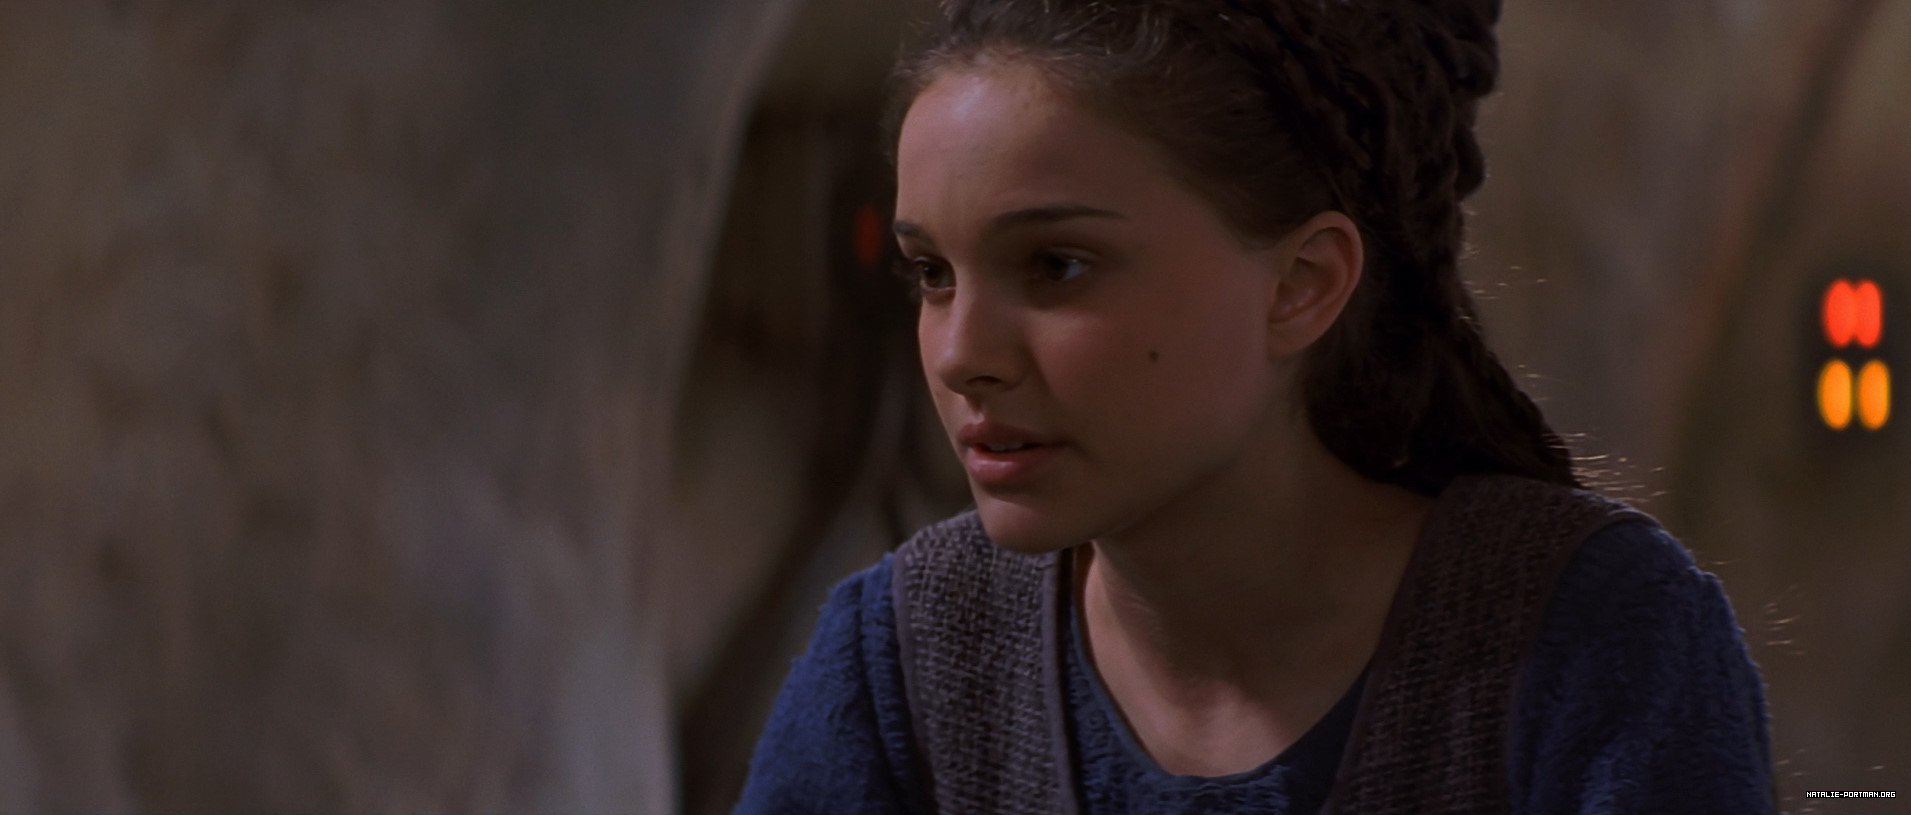 Anywhere But Here (1999) from Natalie Portman: From Cute